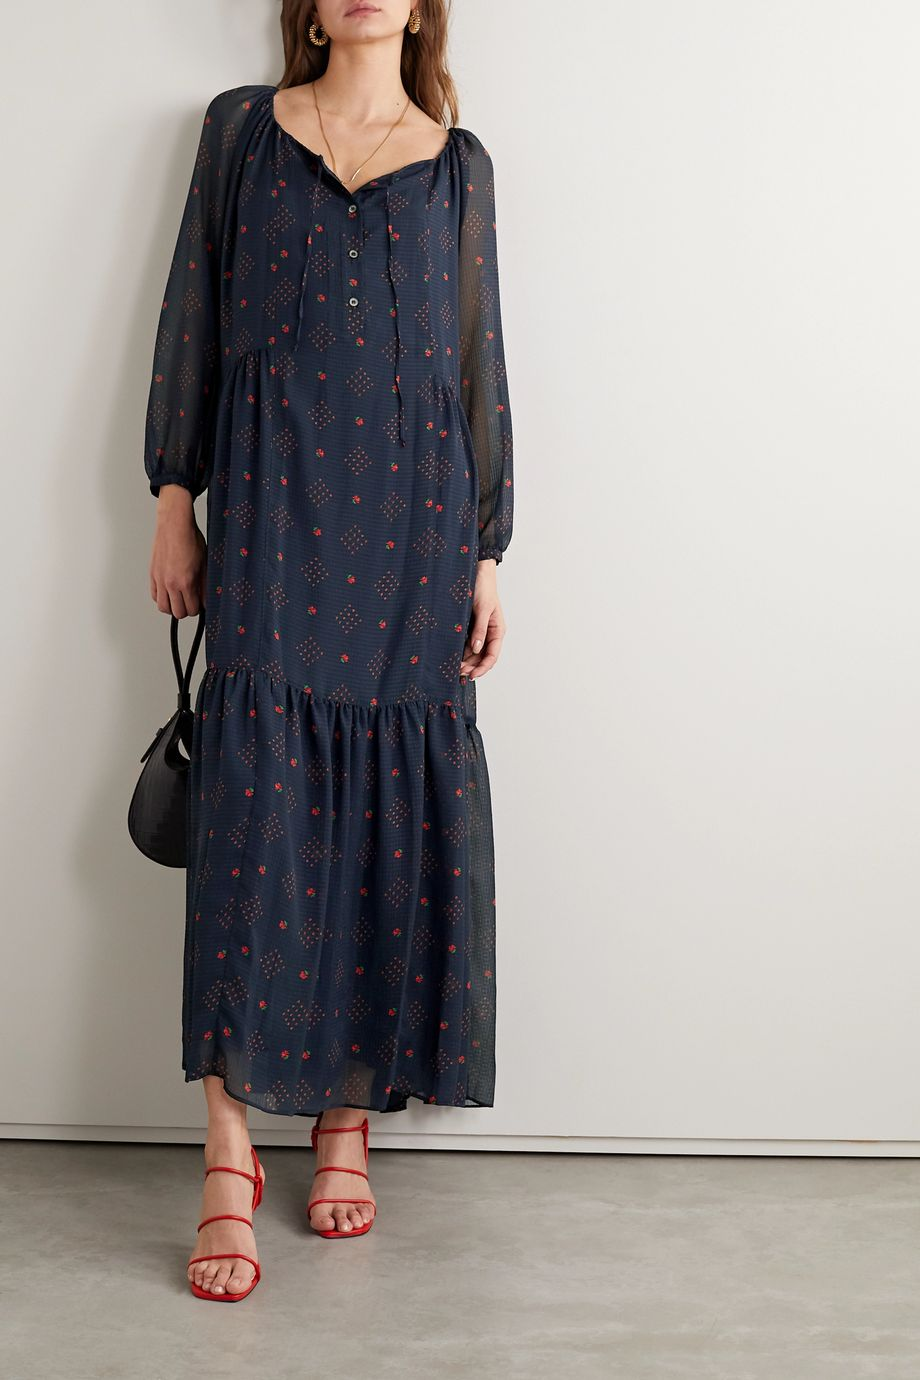 Paul & Joe Chaland floral-print jacquard maxi dress